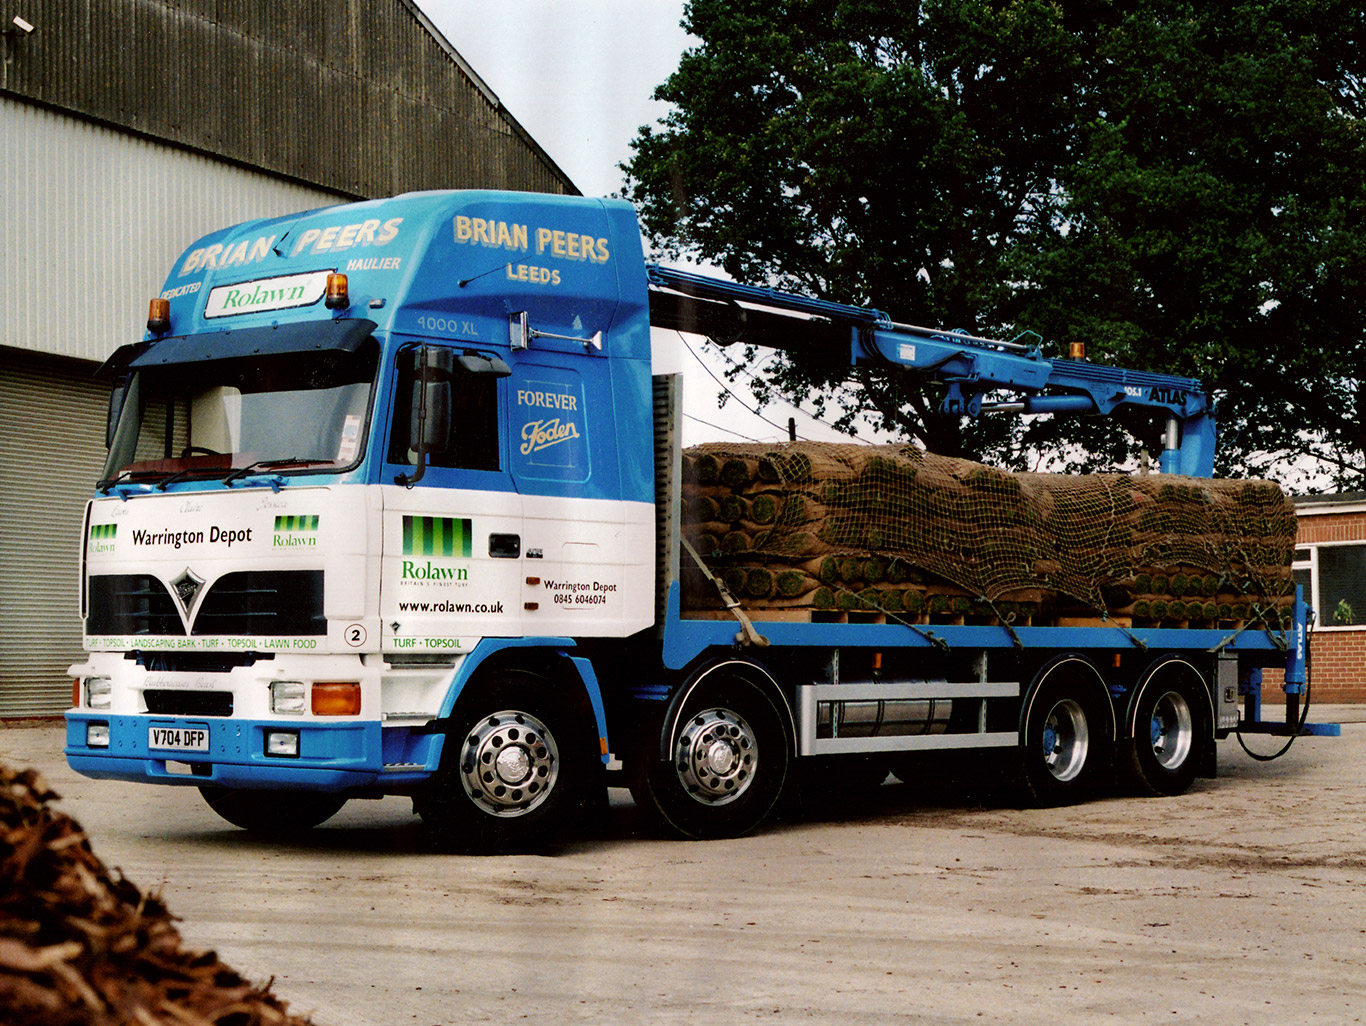 Foden 4400 series renovation and conversion for Brian Peers